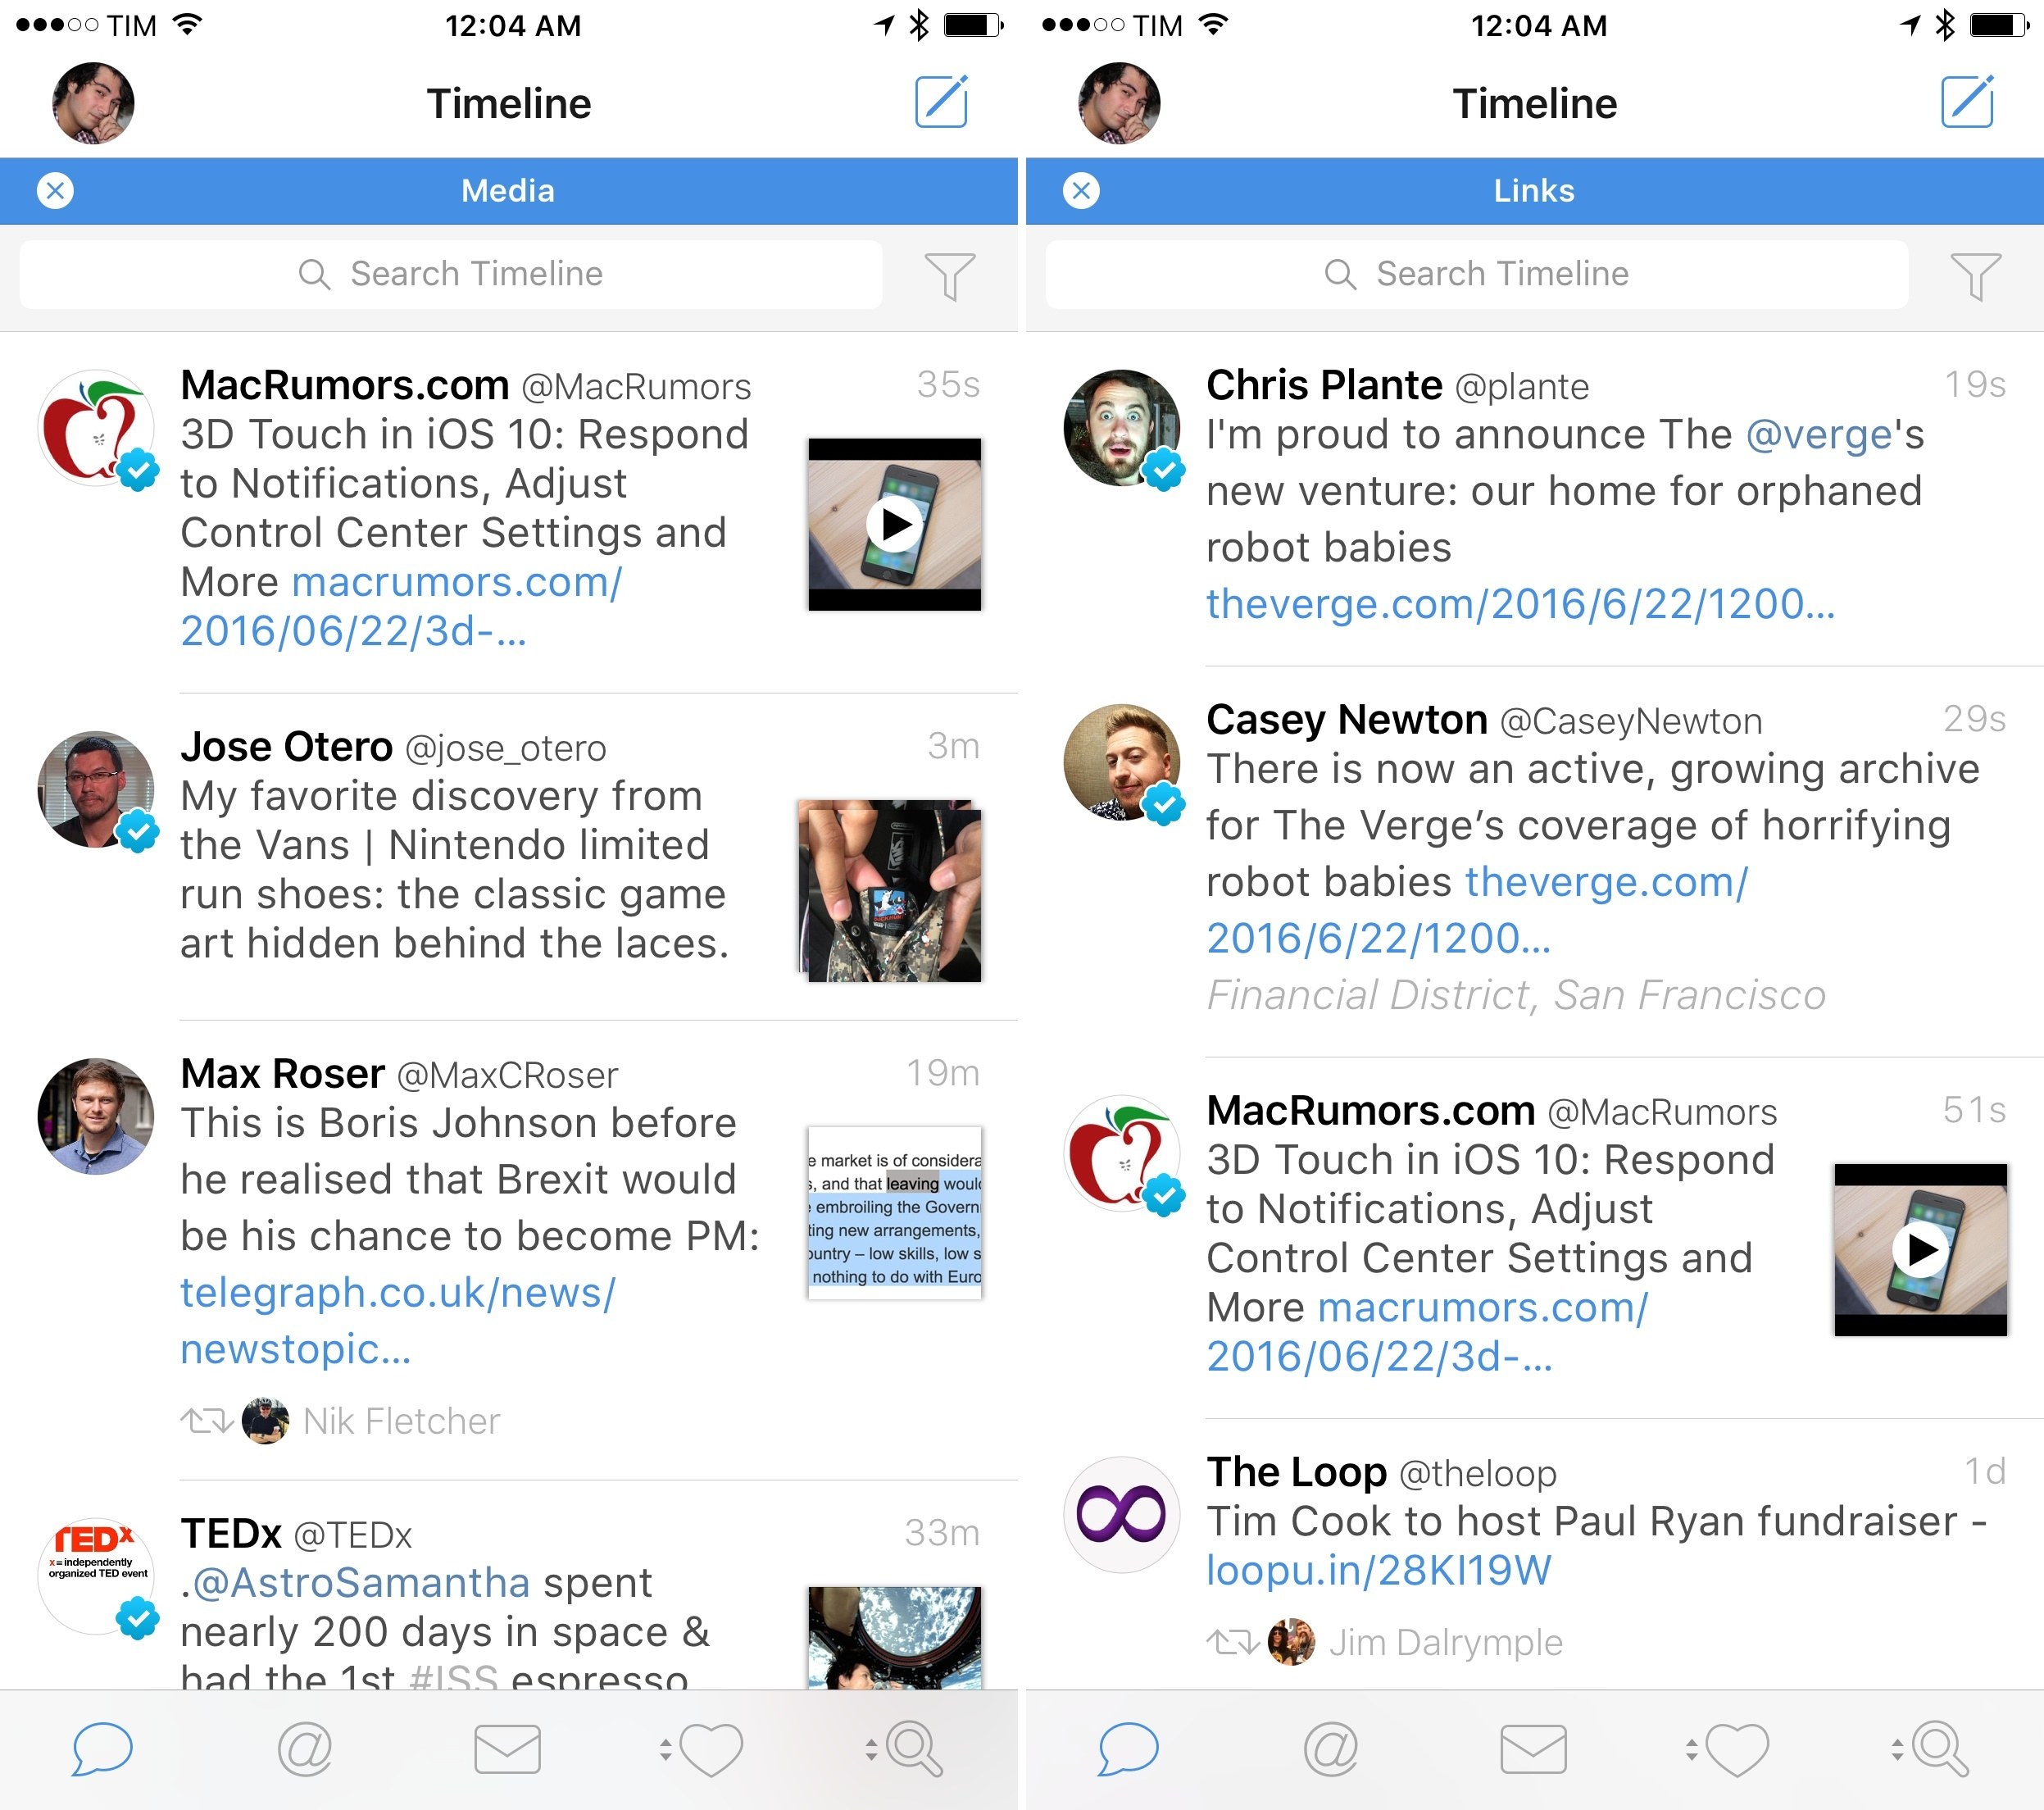 Media and Links filters in Tweetbot 4.4.